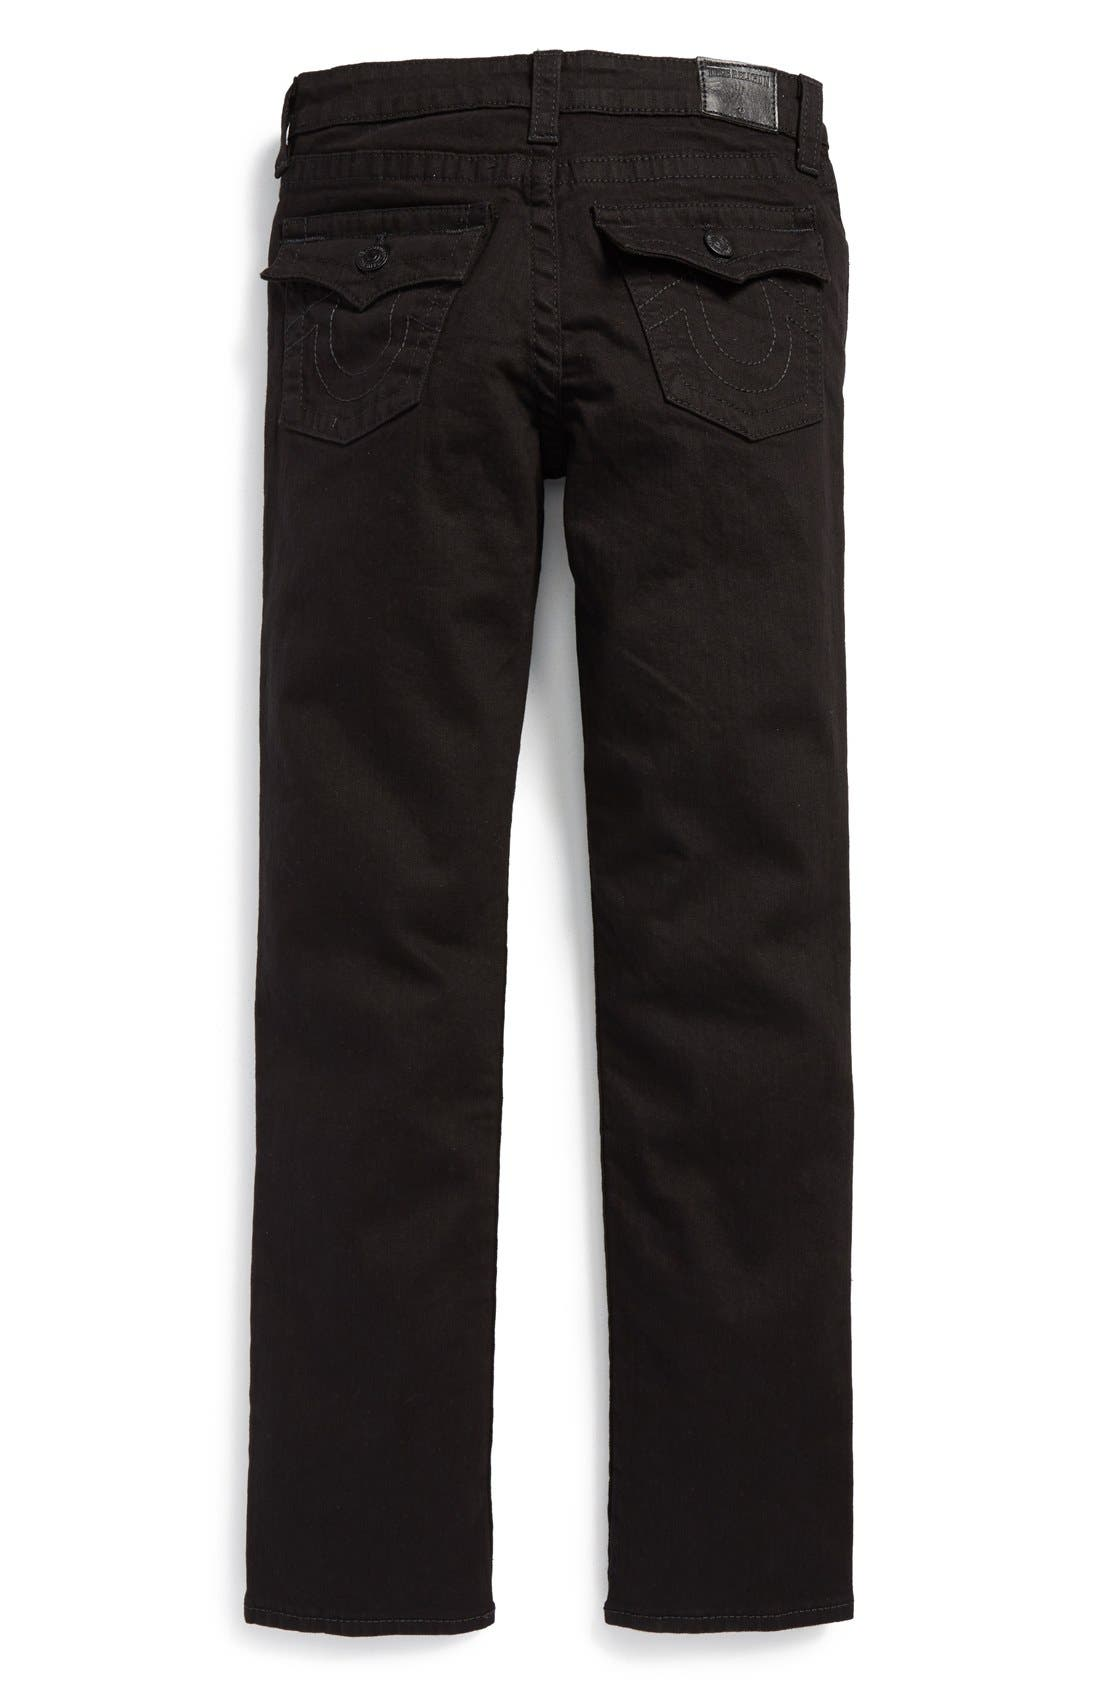 'Geno' Relaxed Slim Fit Jeans,                             Alternate thumbnail 2, color,                             018